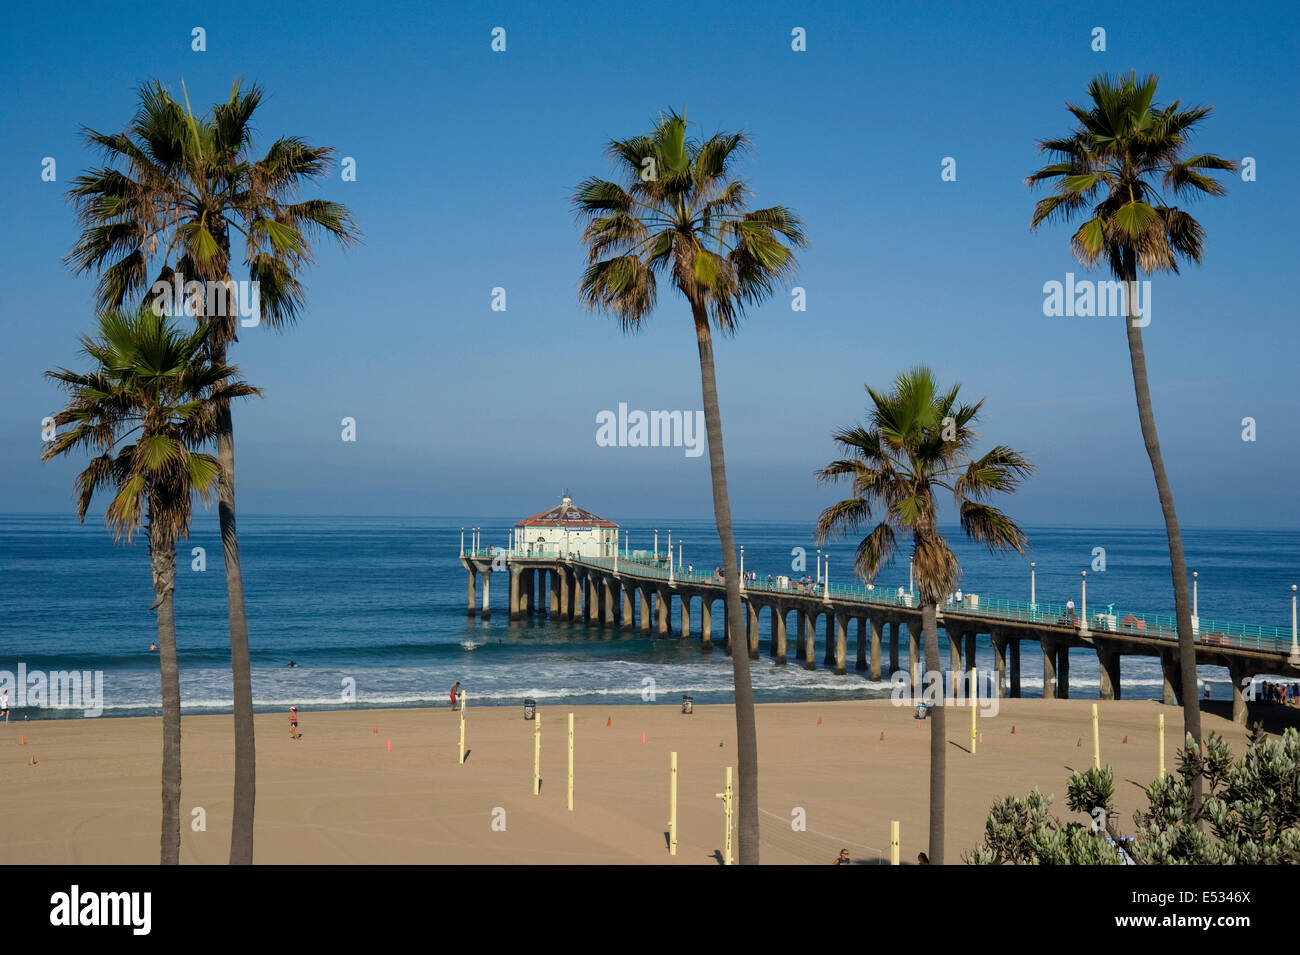 Manhattan Beach Pier In The South Bay Area Of Los Angeles California Stock Photo Alamy